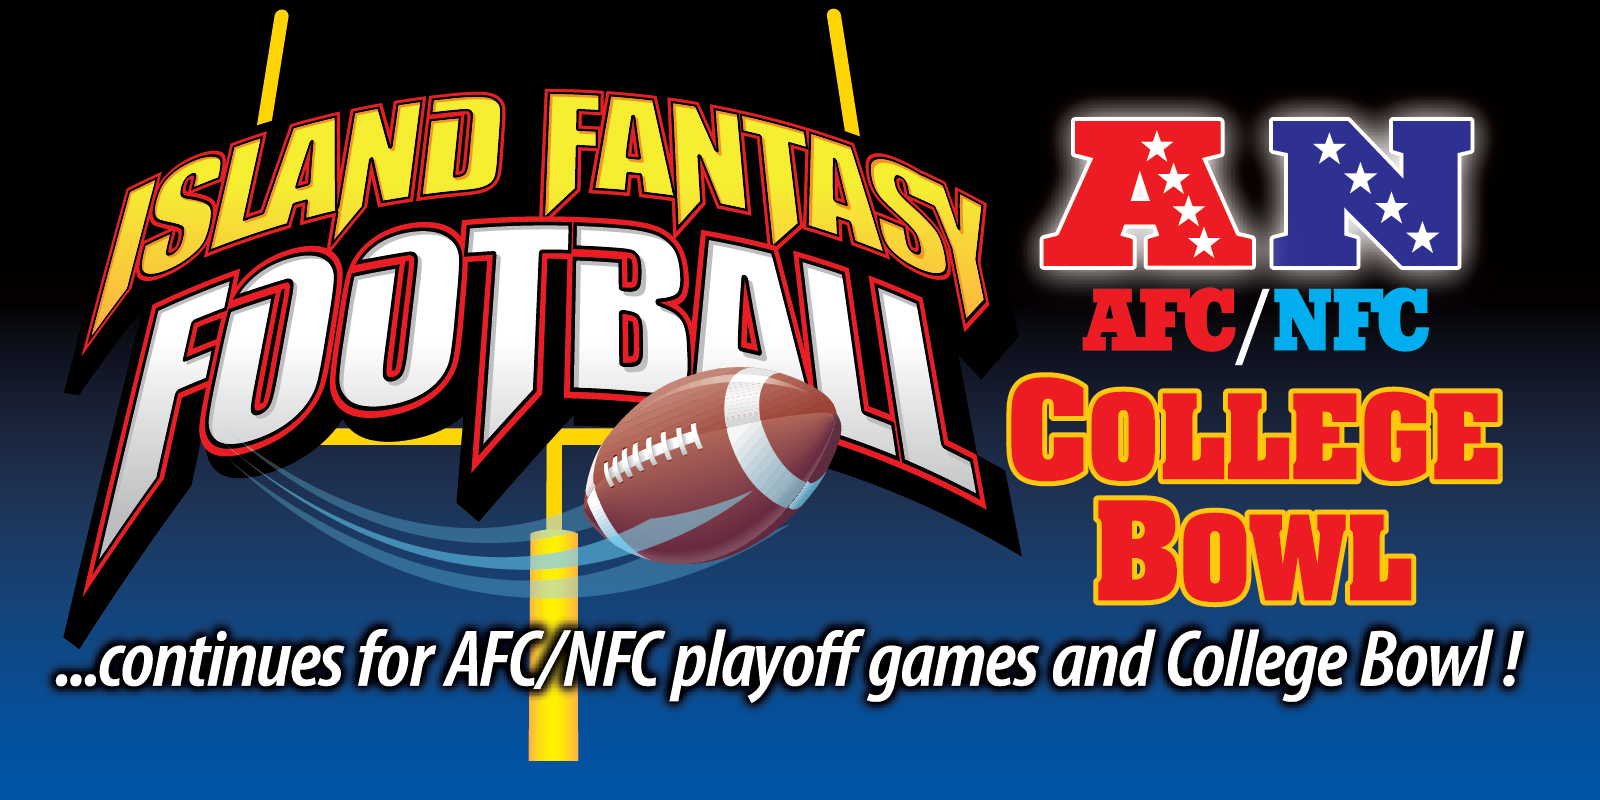 how to win fantasy football playoffs